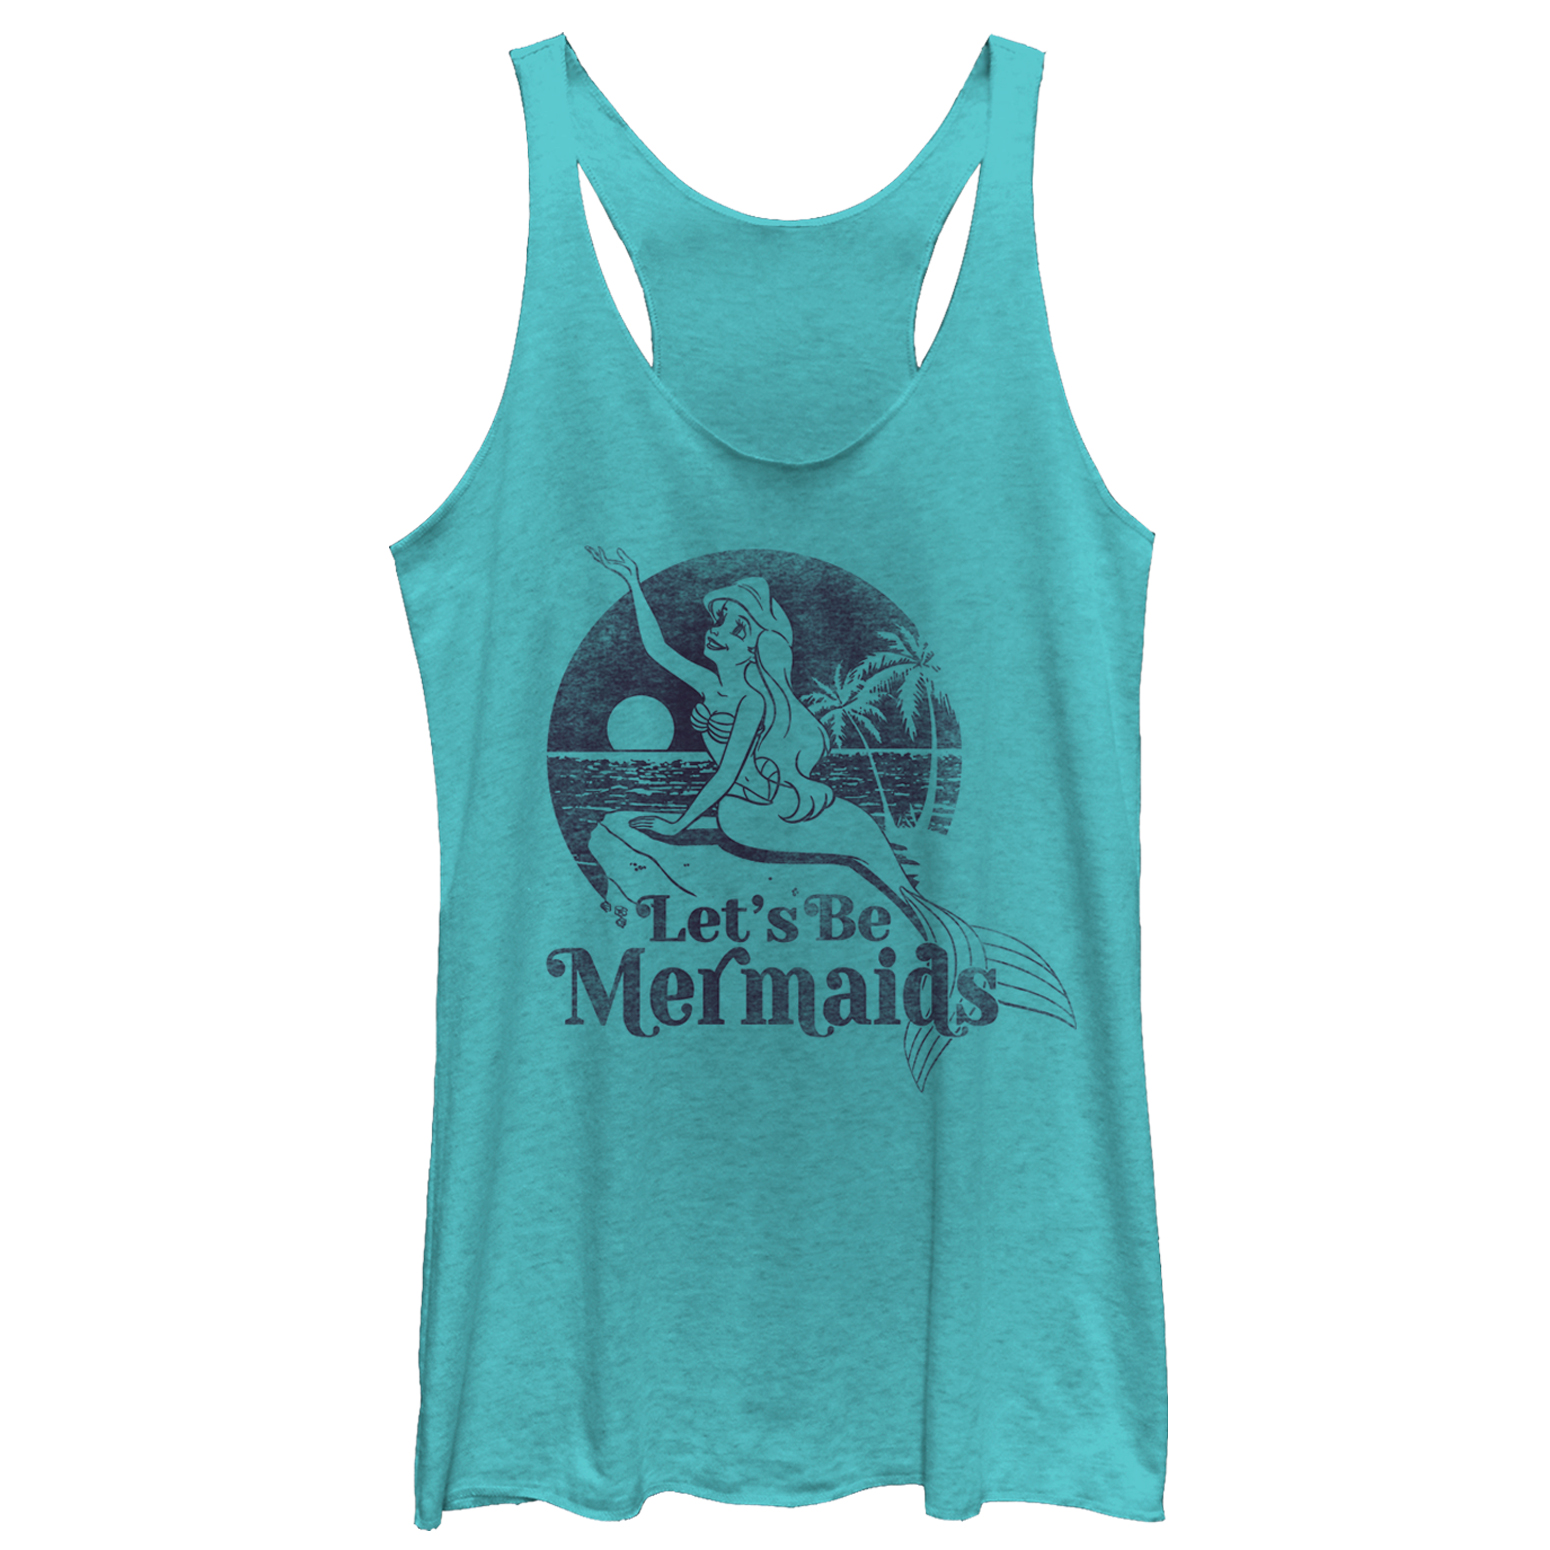 The Little Mermaid Women's Let's Be Racerback Tank Top